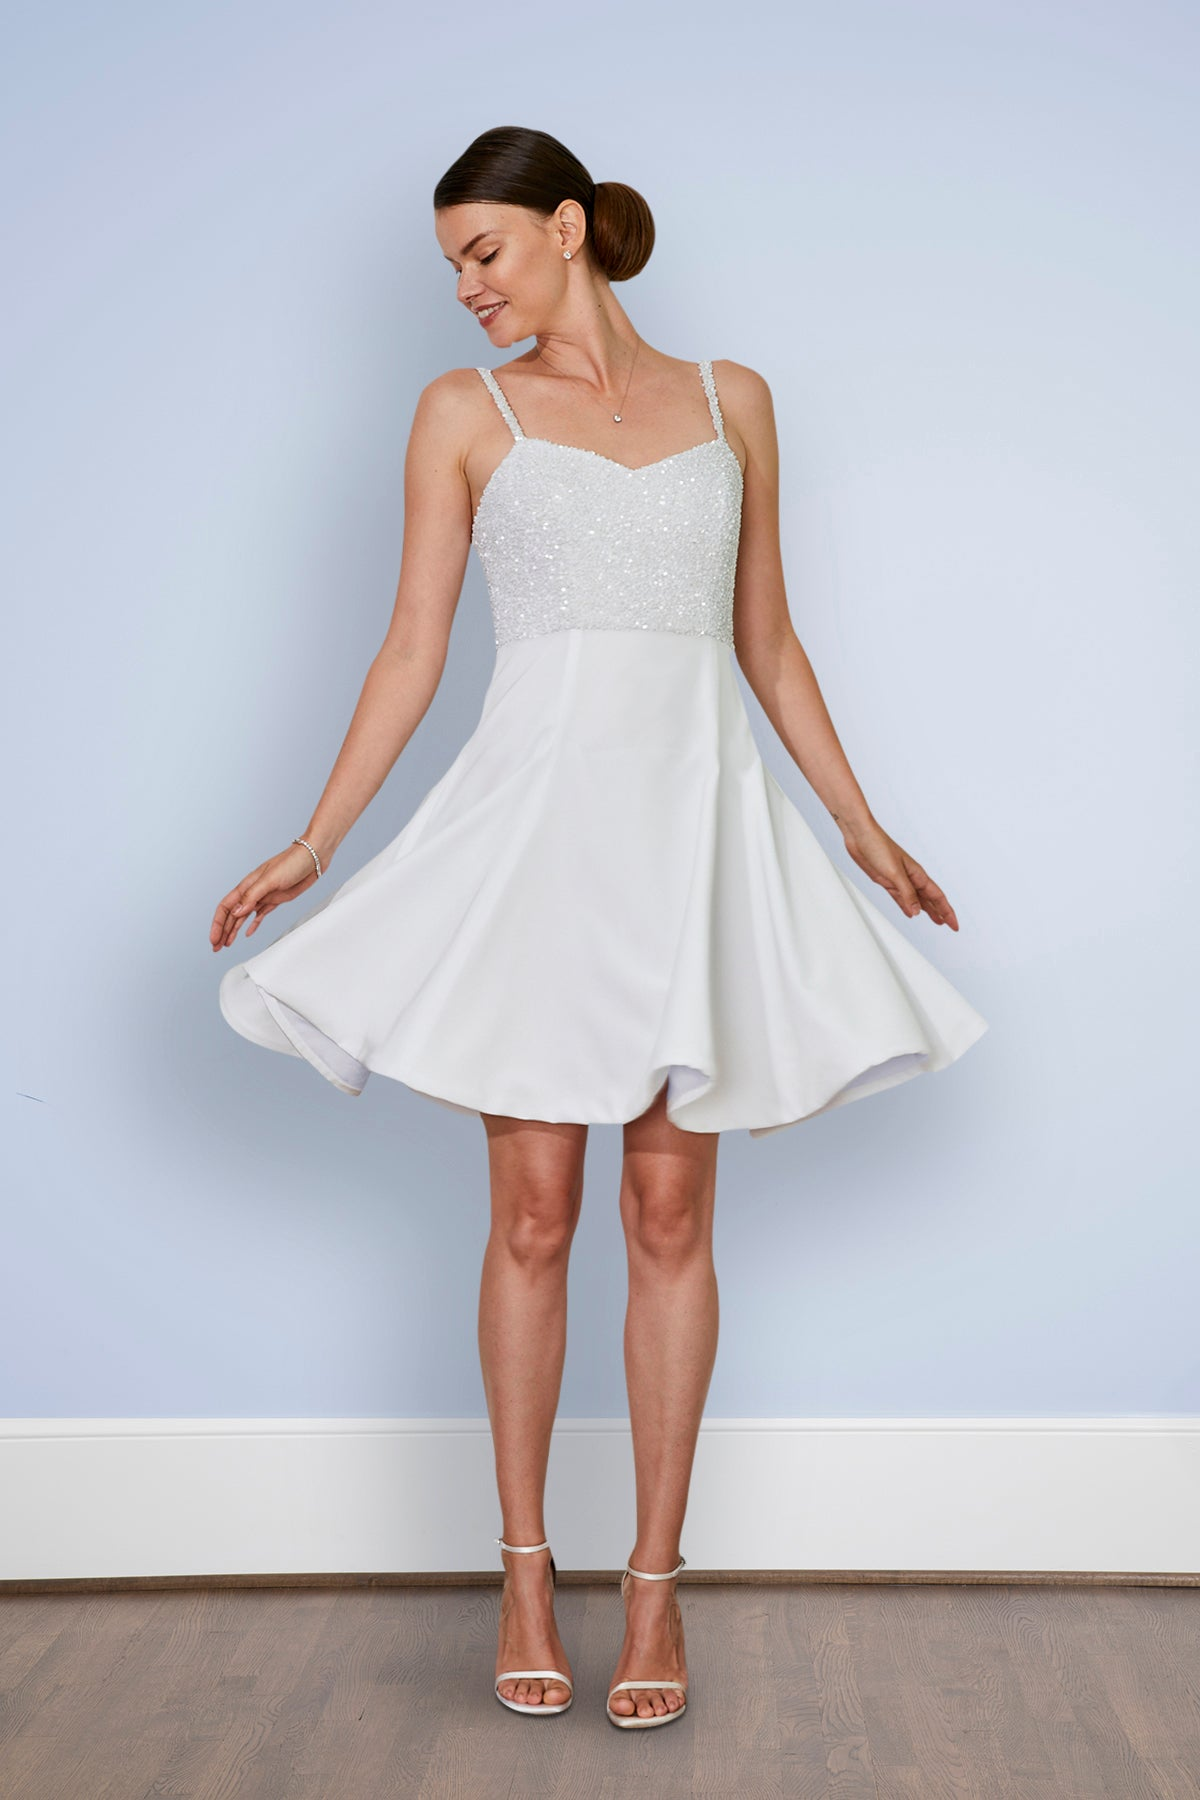 Kelly Short White Wedding and Rehearsal Dinner Bridal Party Dress